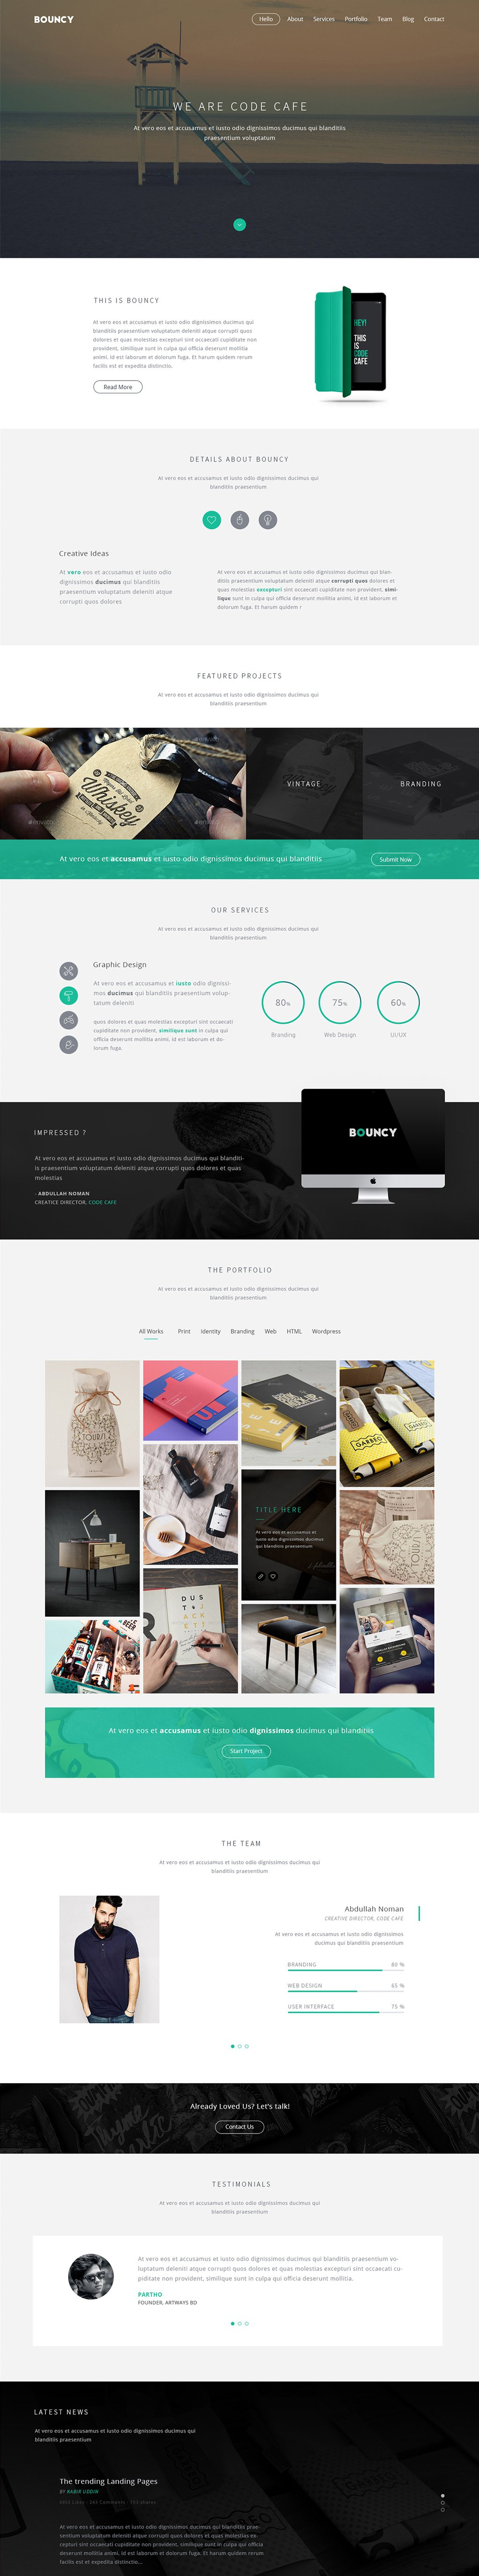 Bouncy - Free One Page Digital Agency Template PSD